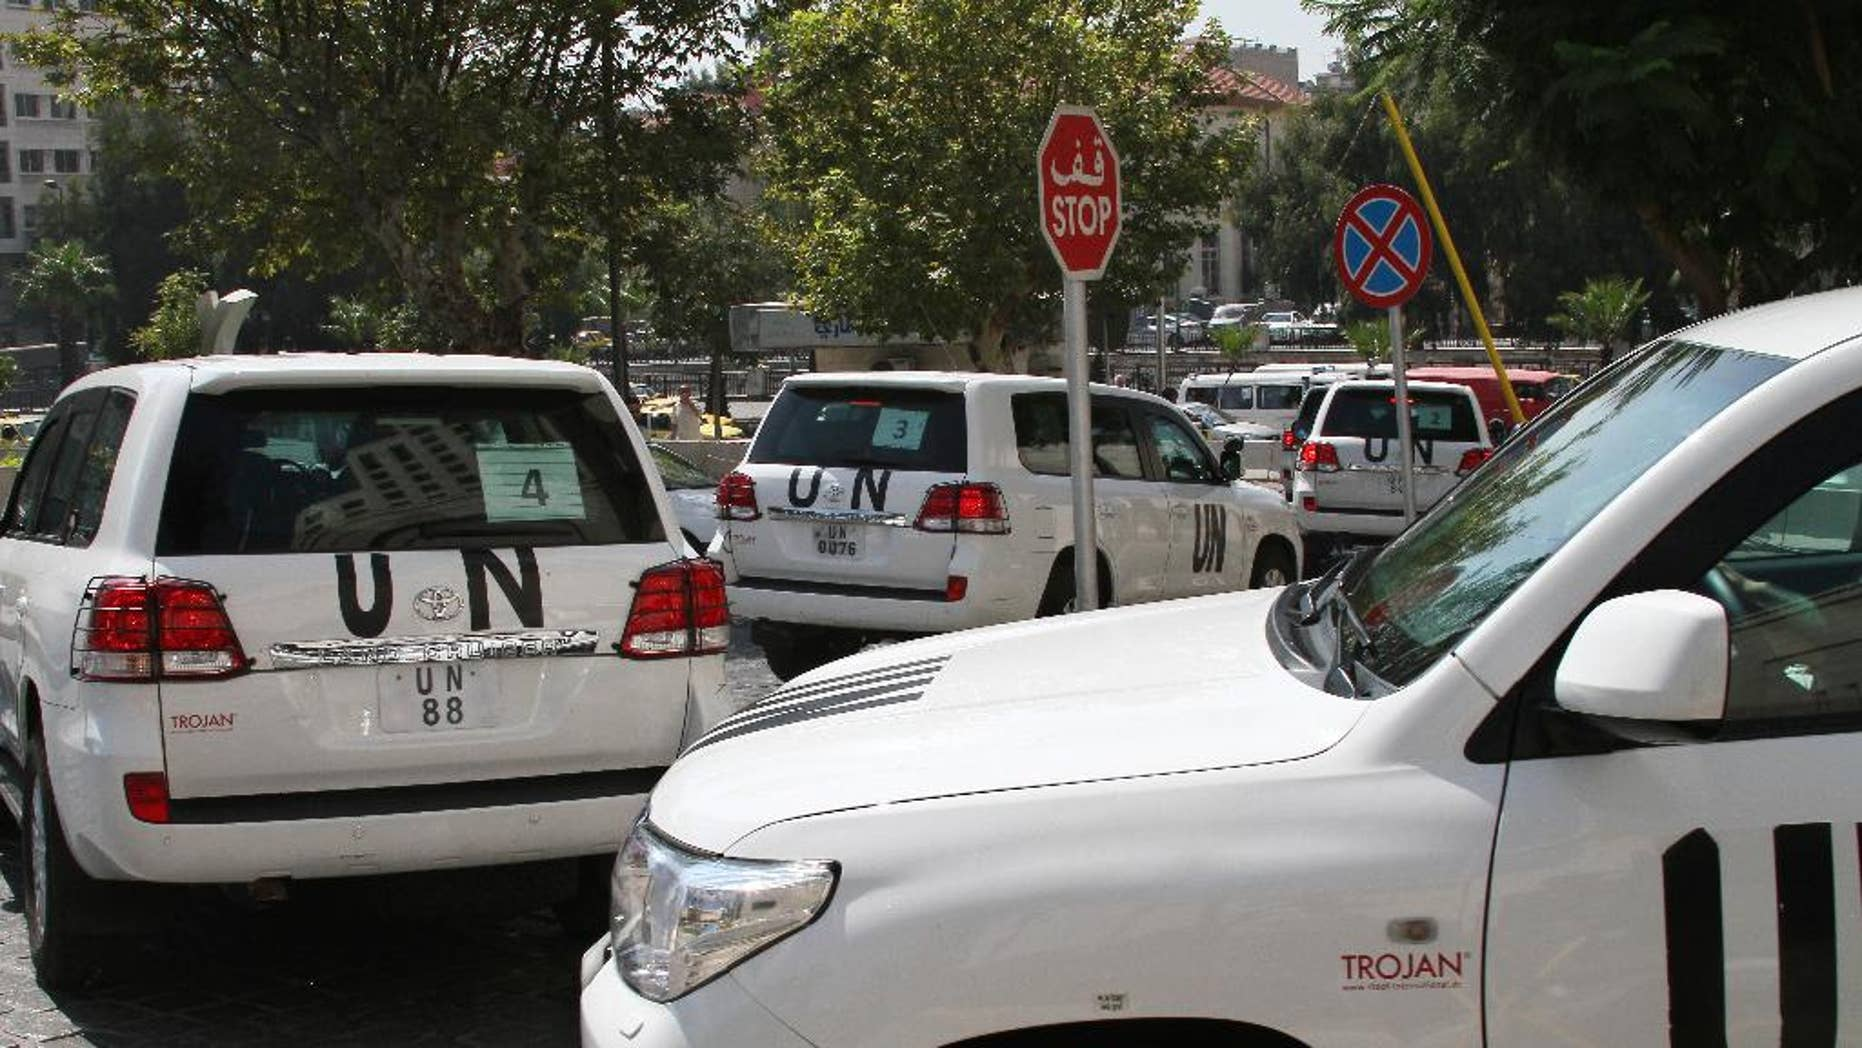 FILE -- In this August 26, 2013, file Photo, a U.N. team, that is scheduled to investigate an alleged chemical attack that killed hundreds last week in a Damascus suburb, leaves their hotel in a convoy, in Damascus, Syria. In a  statement issued Tuesday, May 27, 2014, by the chemical weapons watchdog that is overseeing the dismantling of Syria's chemical weapons program, said a convoy of its inspectors has come under attack, but all are safe.  The Organization for the Prohibition of Chemical Weapons said that the inspectors had been traveling to the site of an alleged chlorine gas attack site when they were attacked. (AP Photo, File)